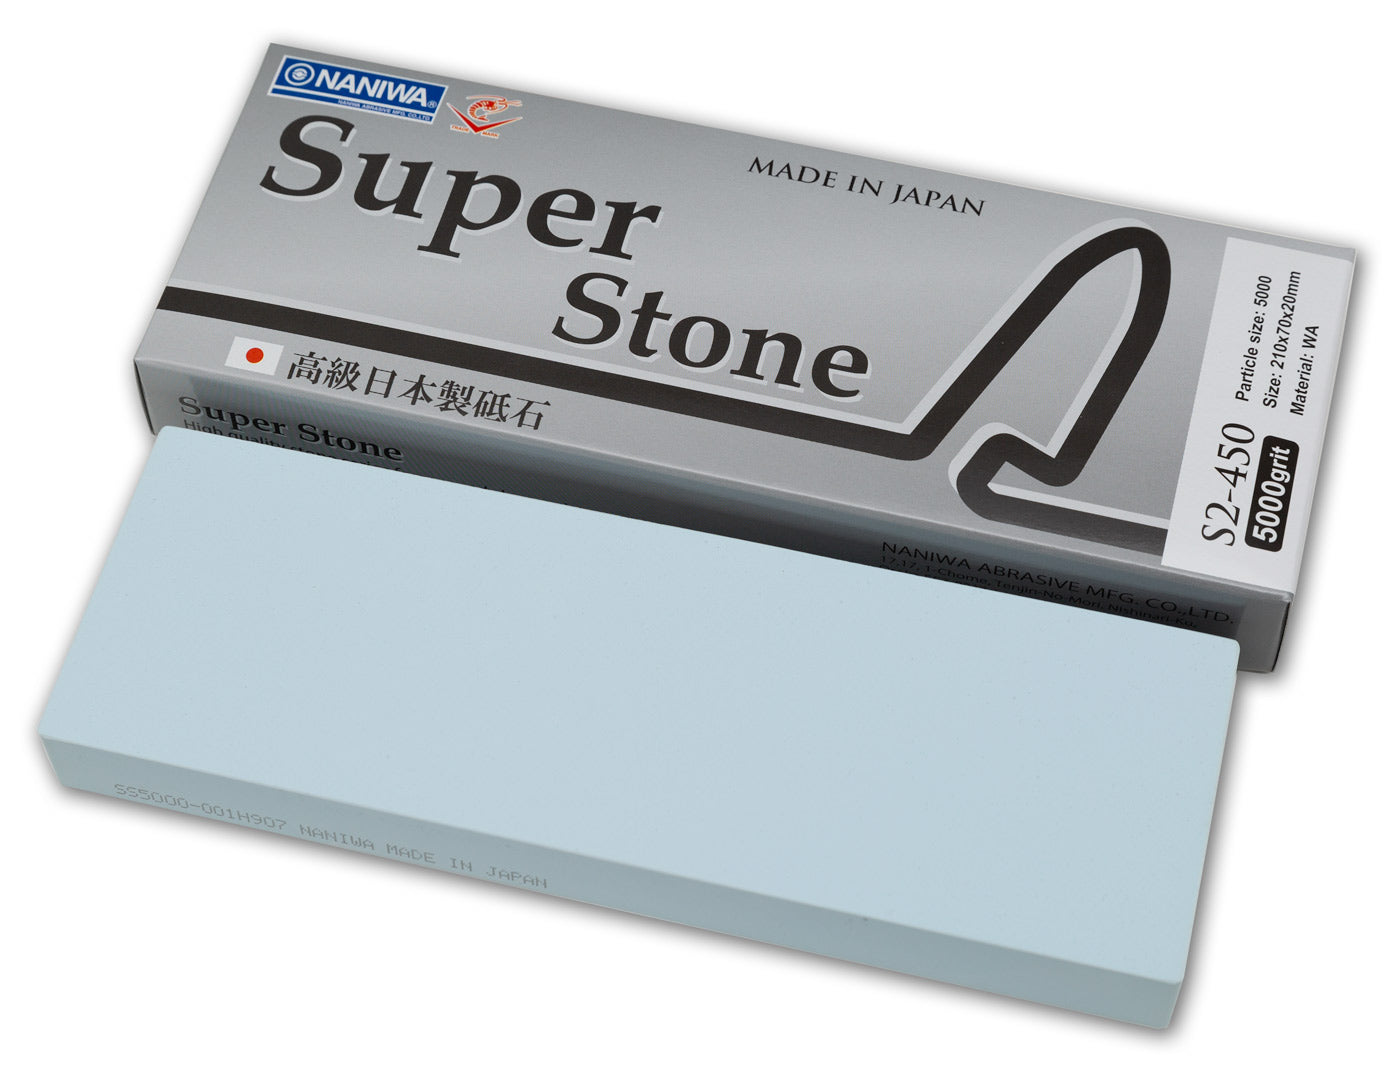 Naniwa Super-Stone Japanese Whetstone Sharpening Stone, 5000 grit